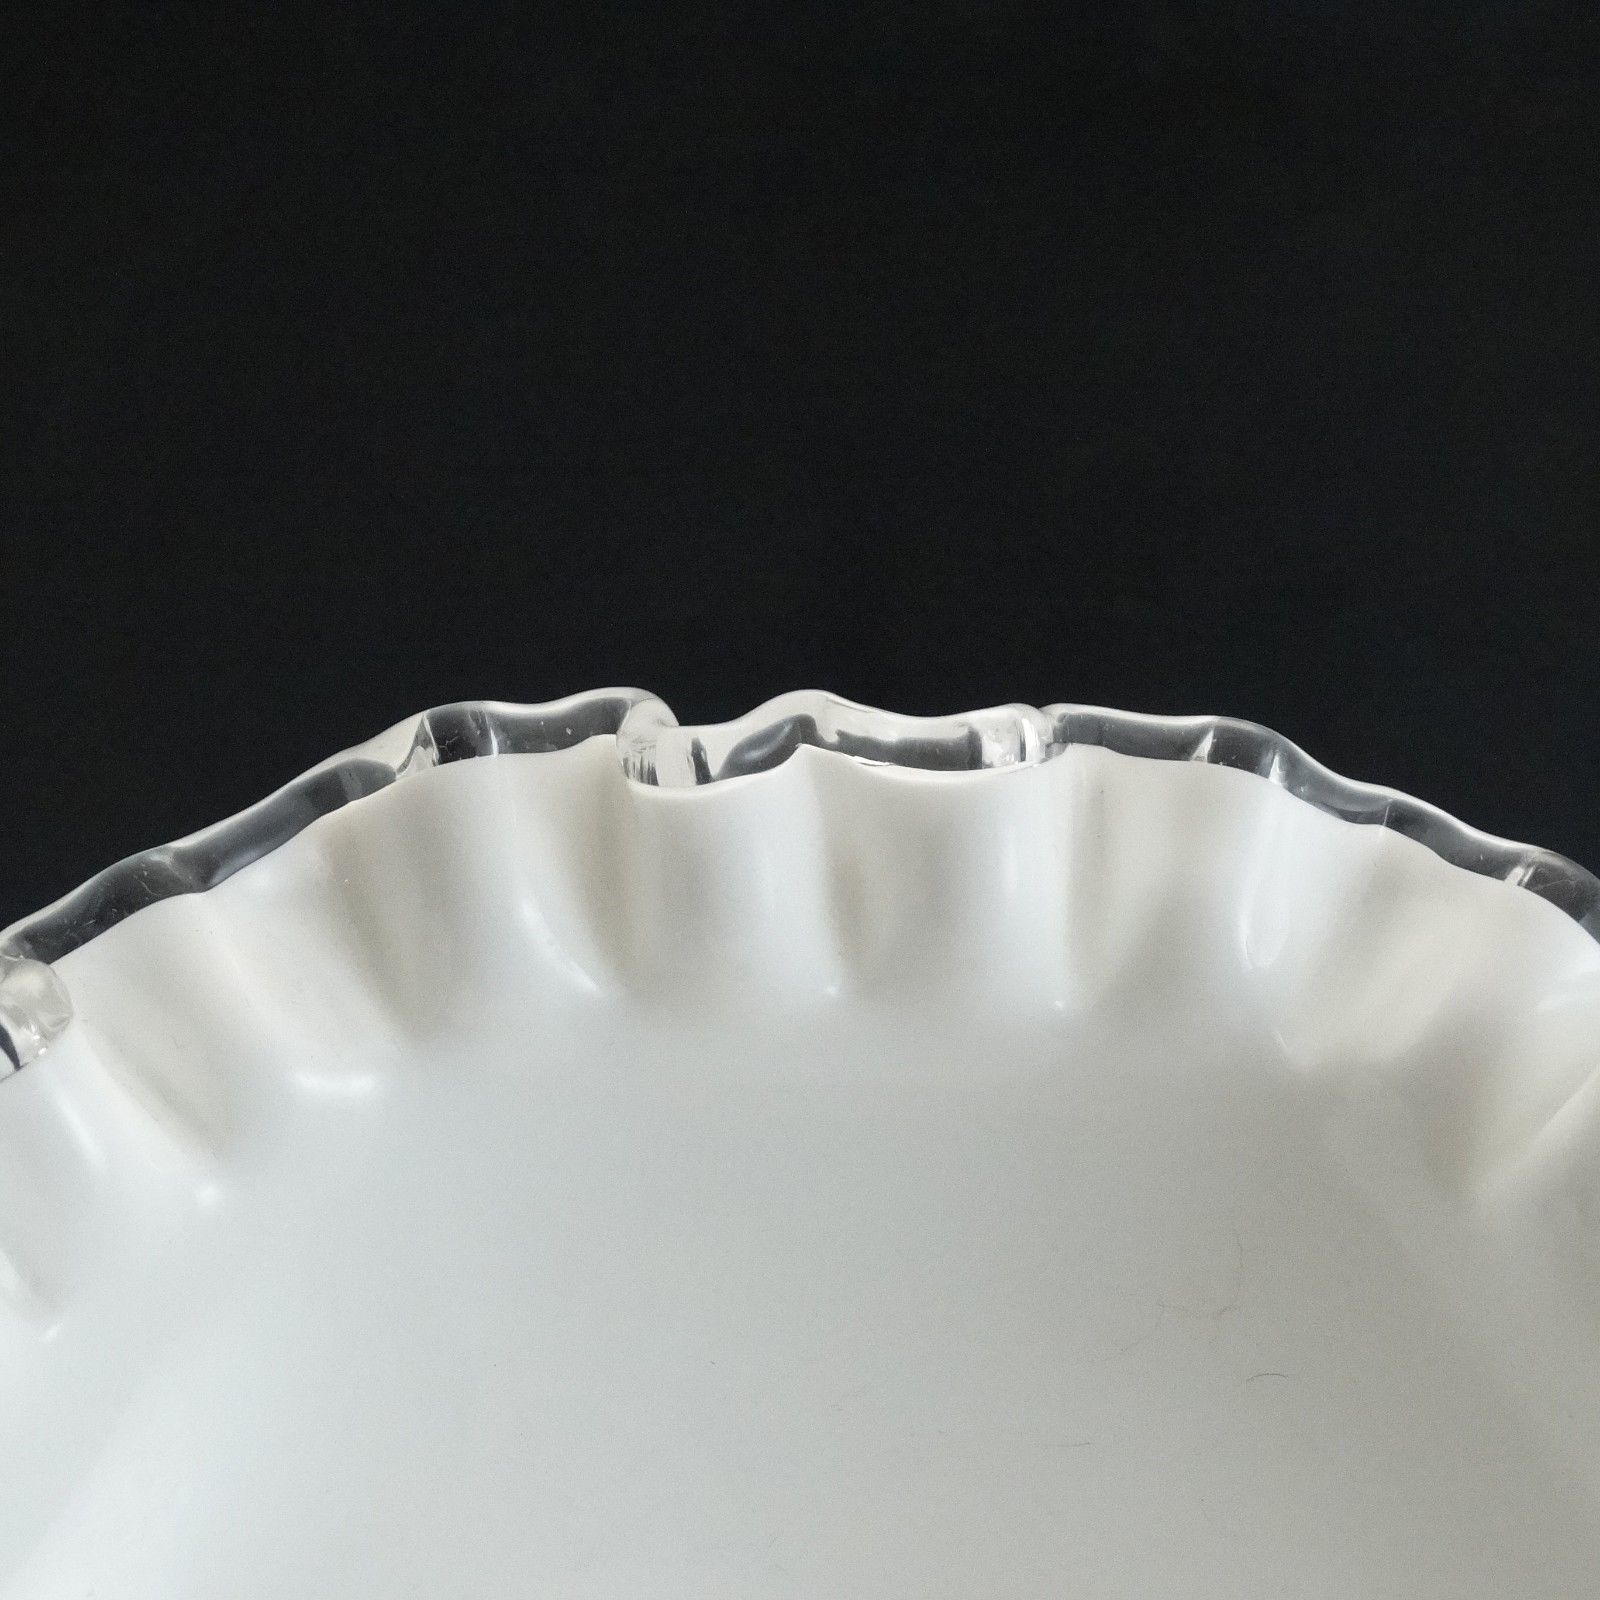 Vintage Fenton Glass Silver Crest Footed 7 inch Compote Bowl White Milk Glass  image 5